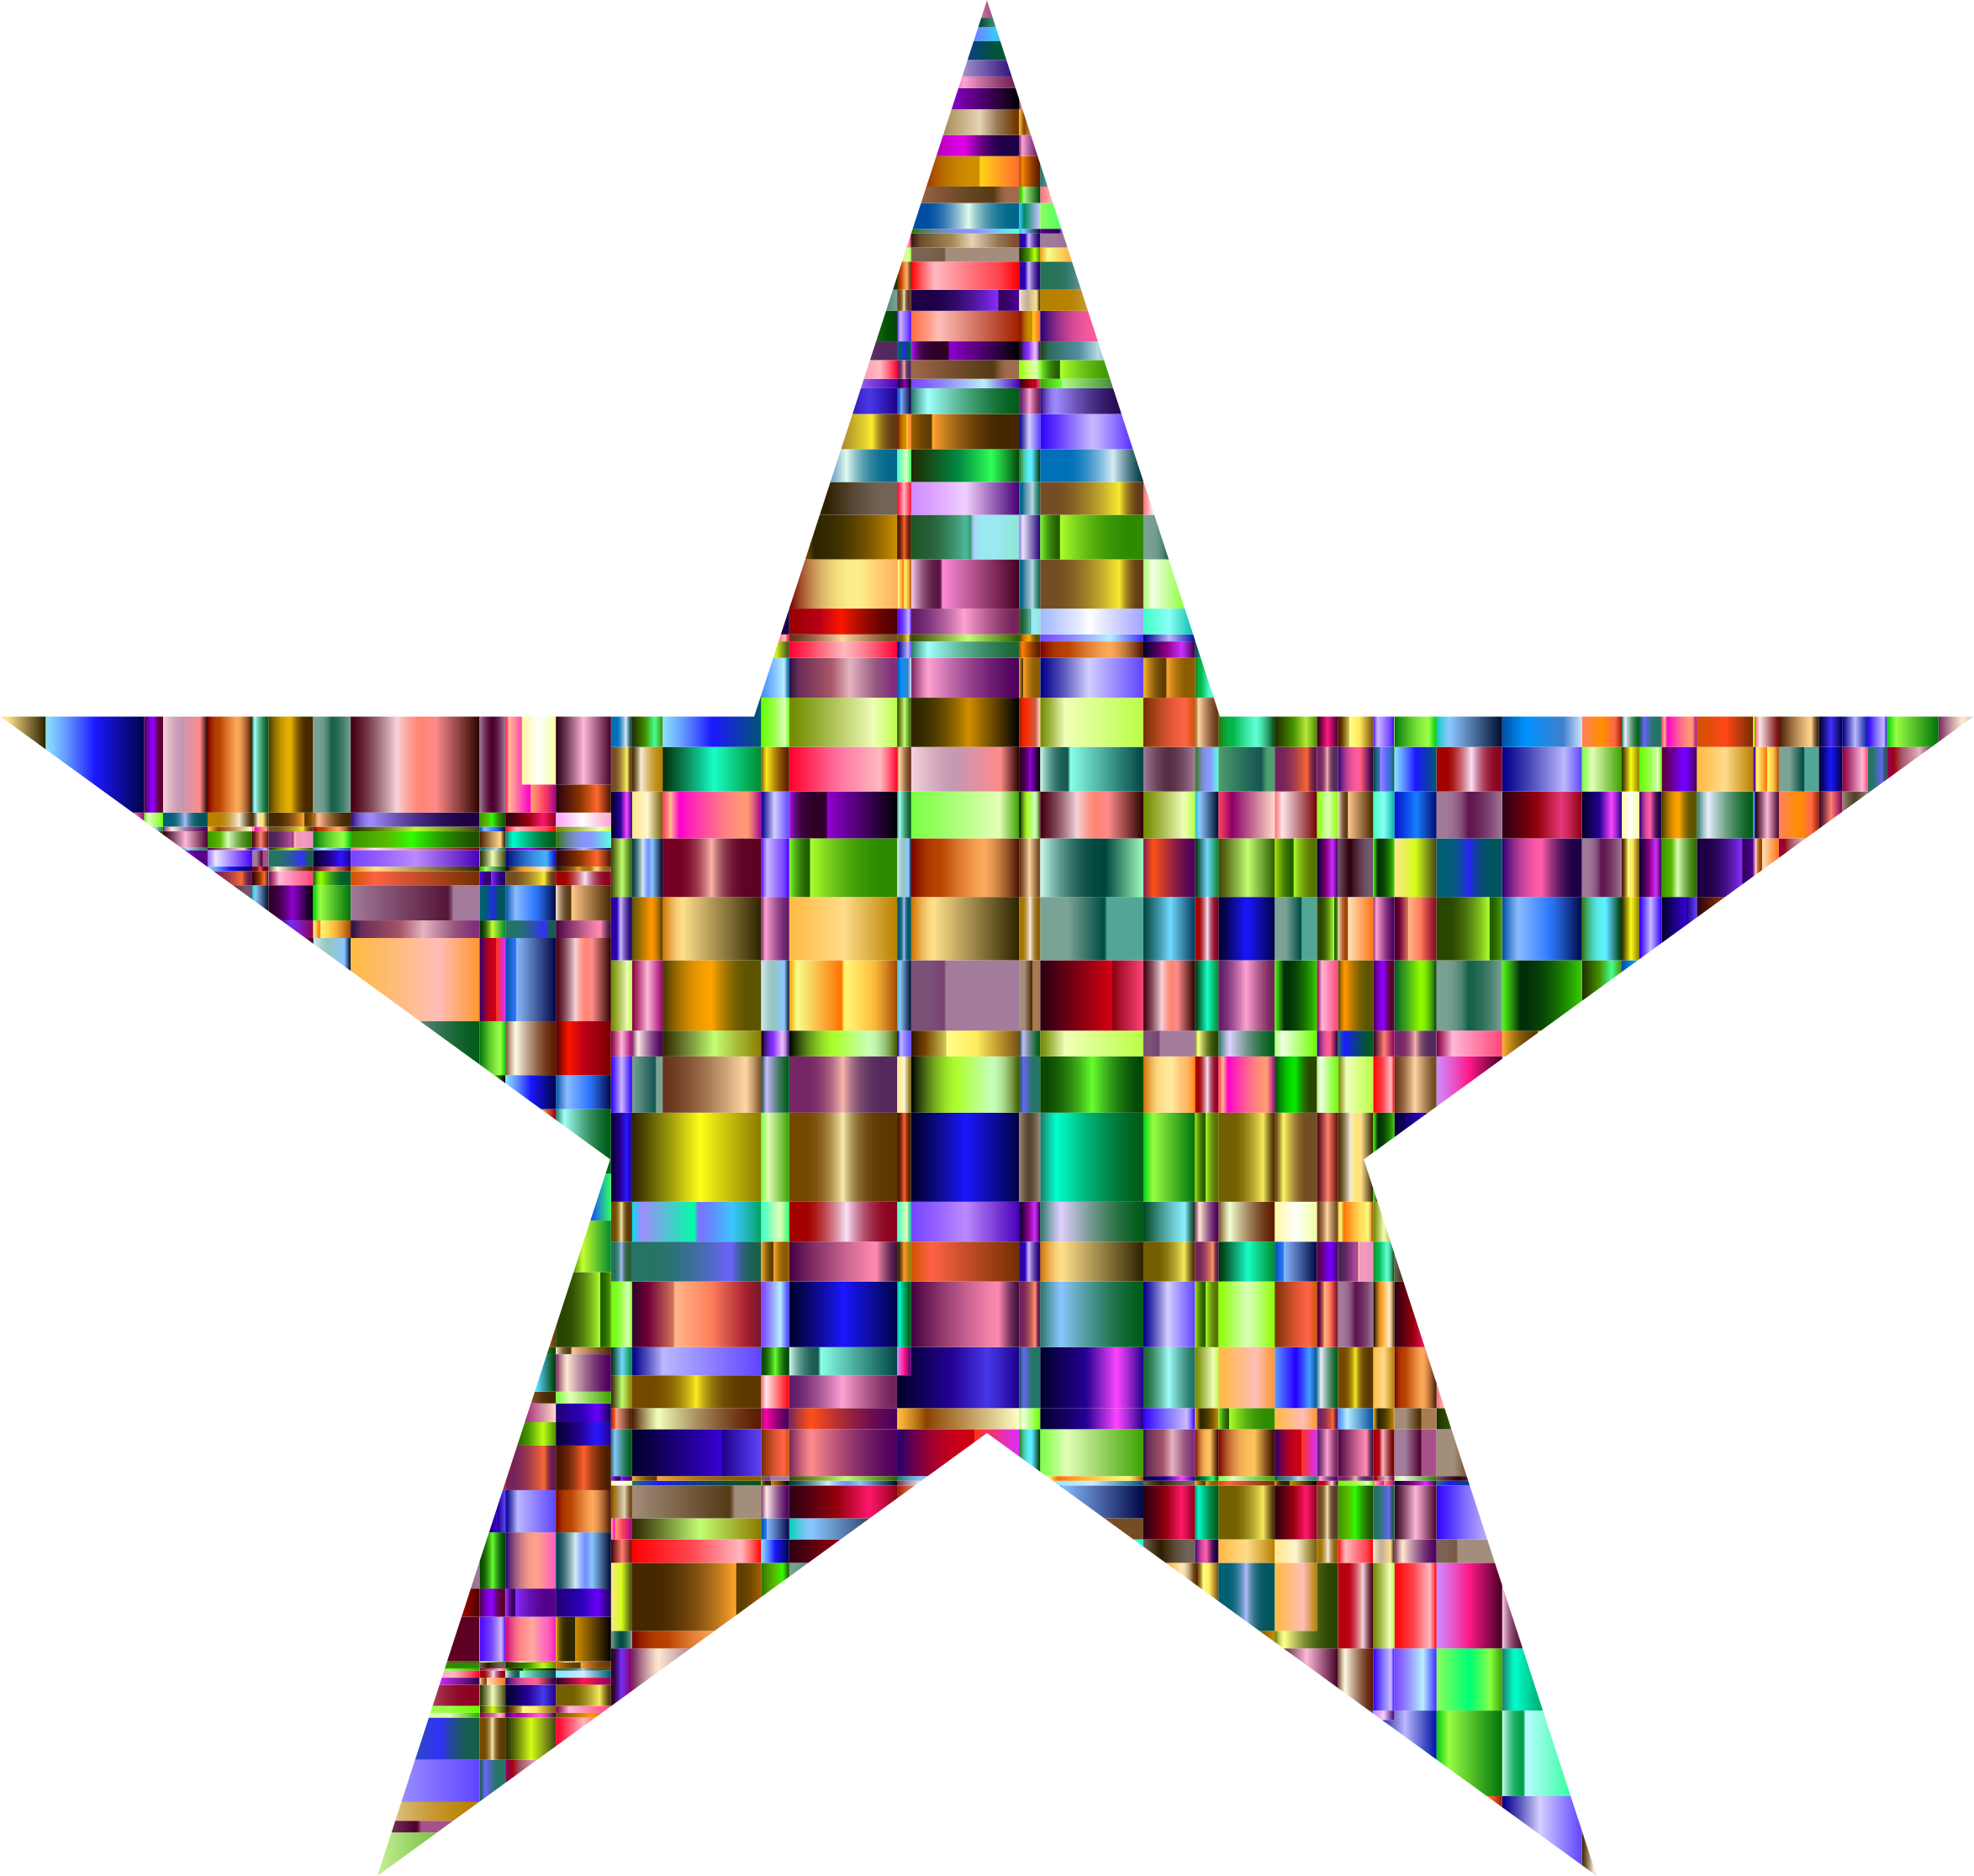 Checkered Chromatic Star by GDJ